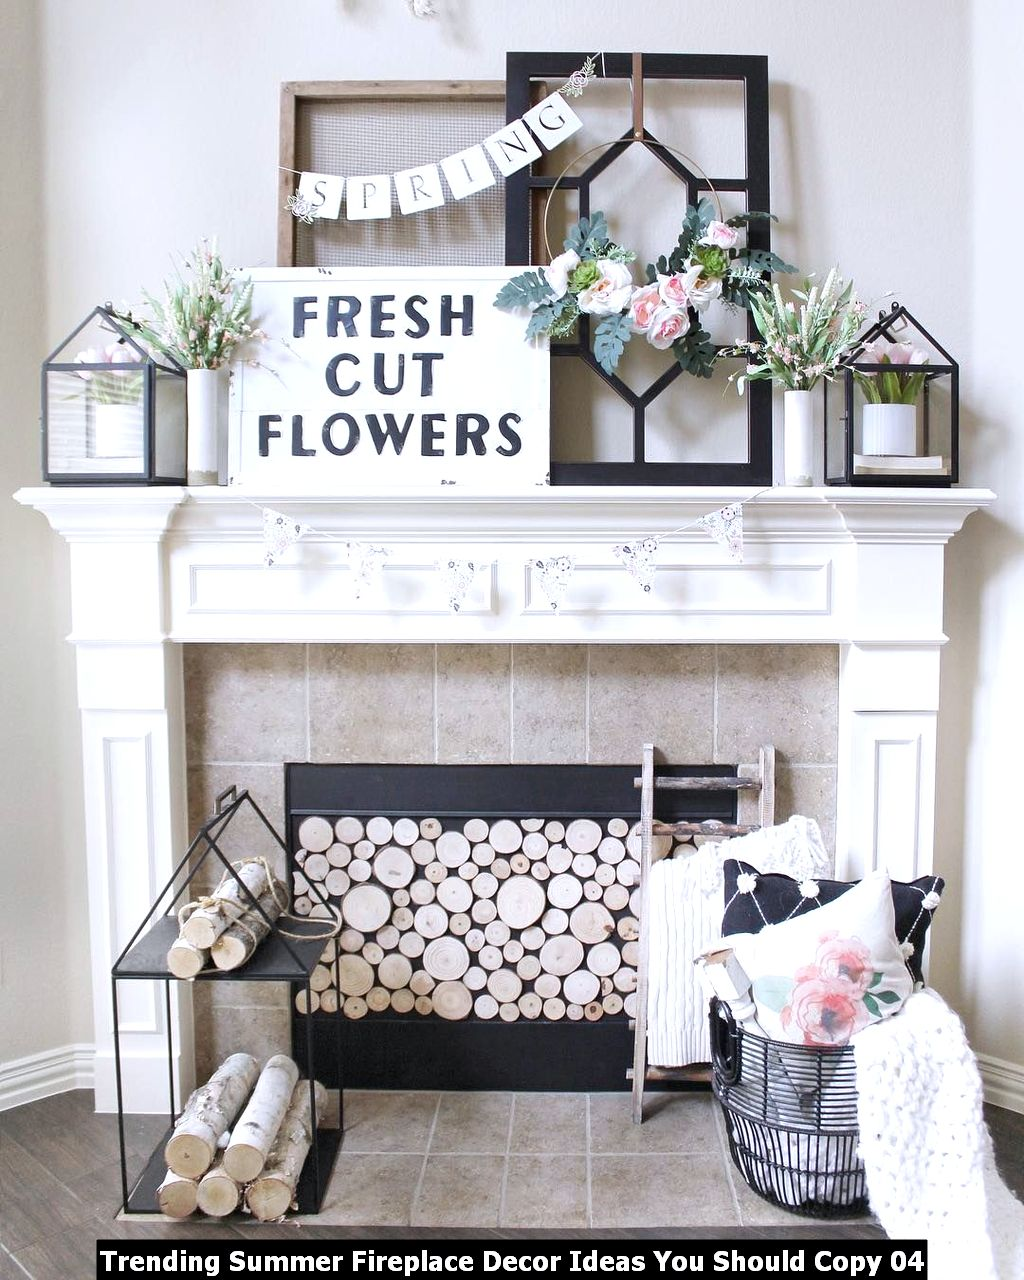 Trending Summer Fireplace Decor Ideas You Should Copy 04